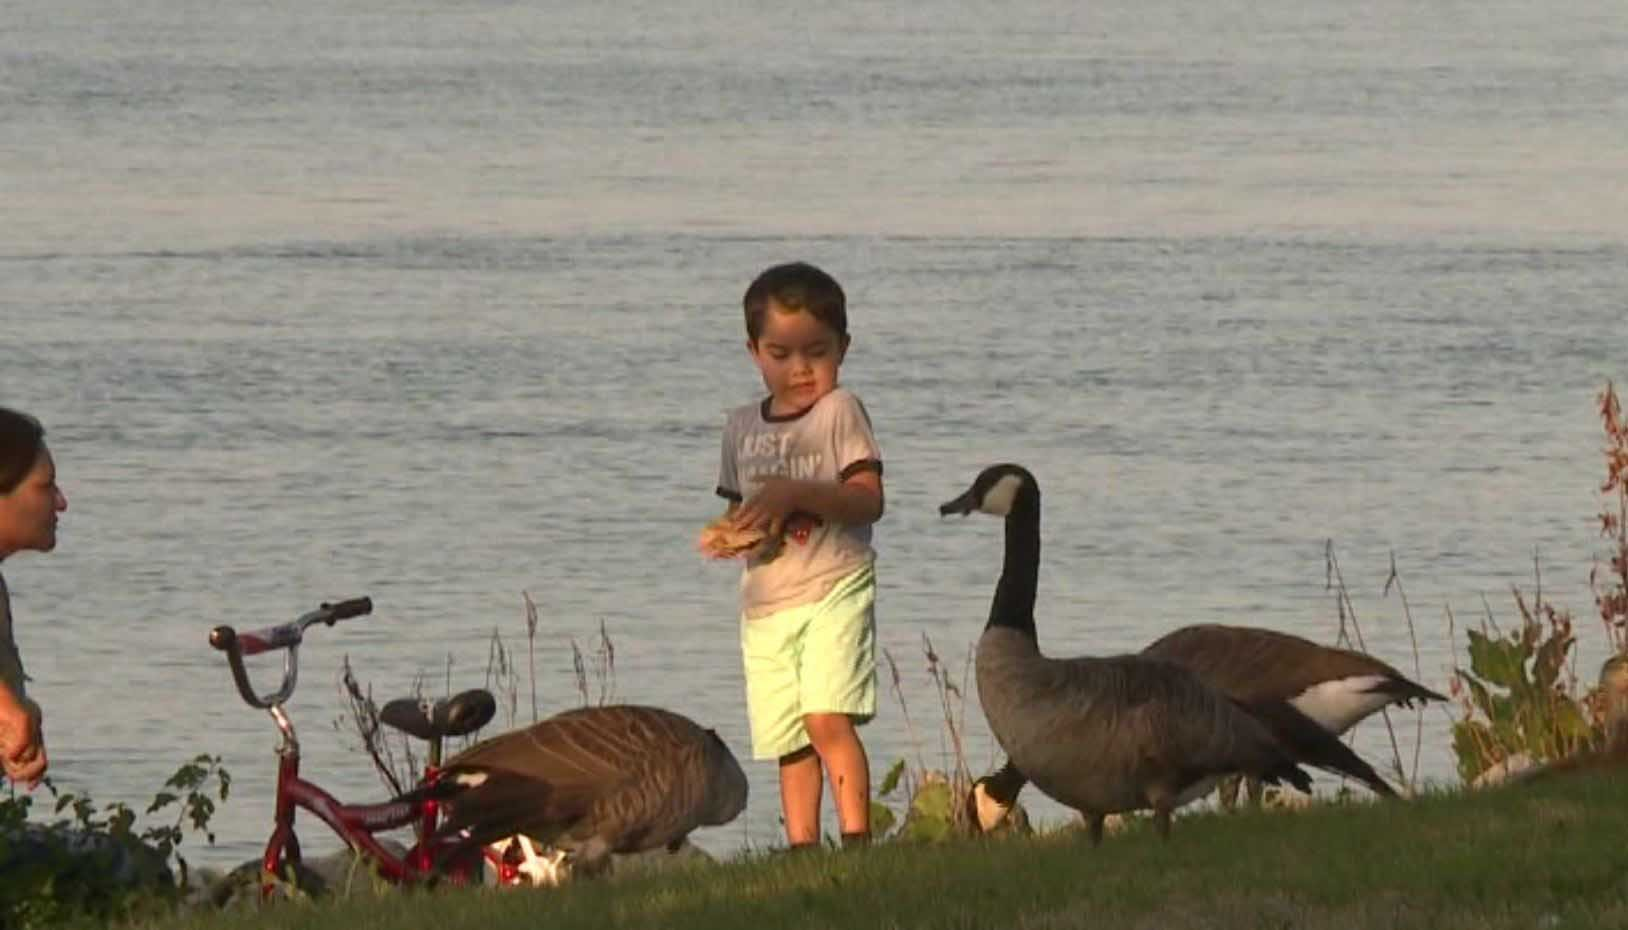 Canada geese have taken over a park in Moline, IL. (Source: WQAD via CNN)